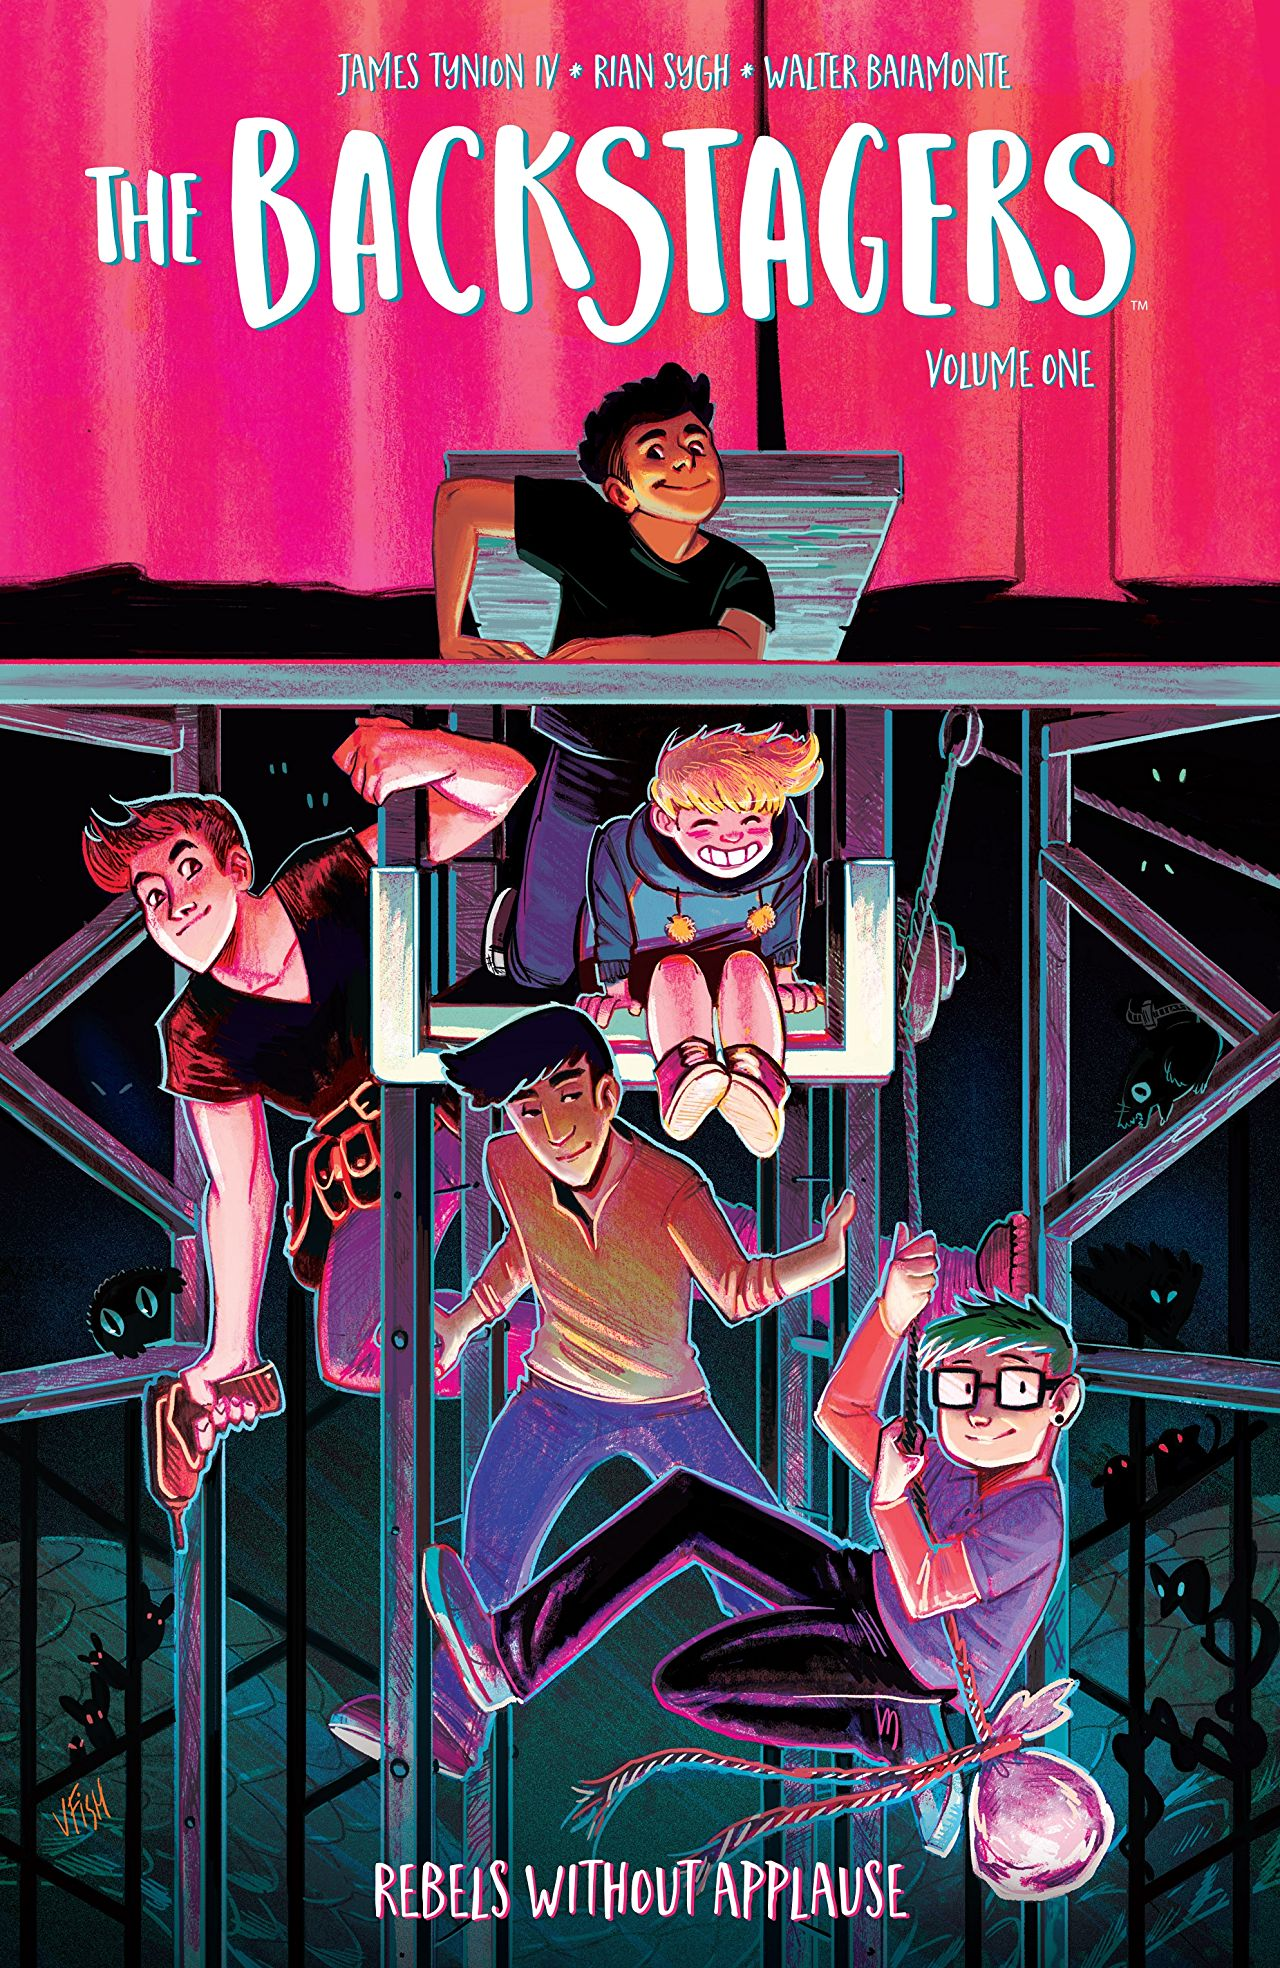 'The Backstagers Vol. 1: Rebels Without Applause' is an uplifting experience